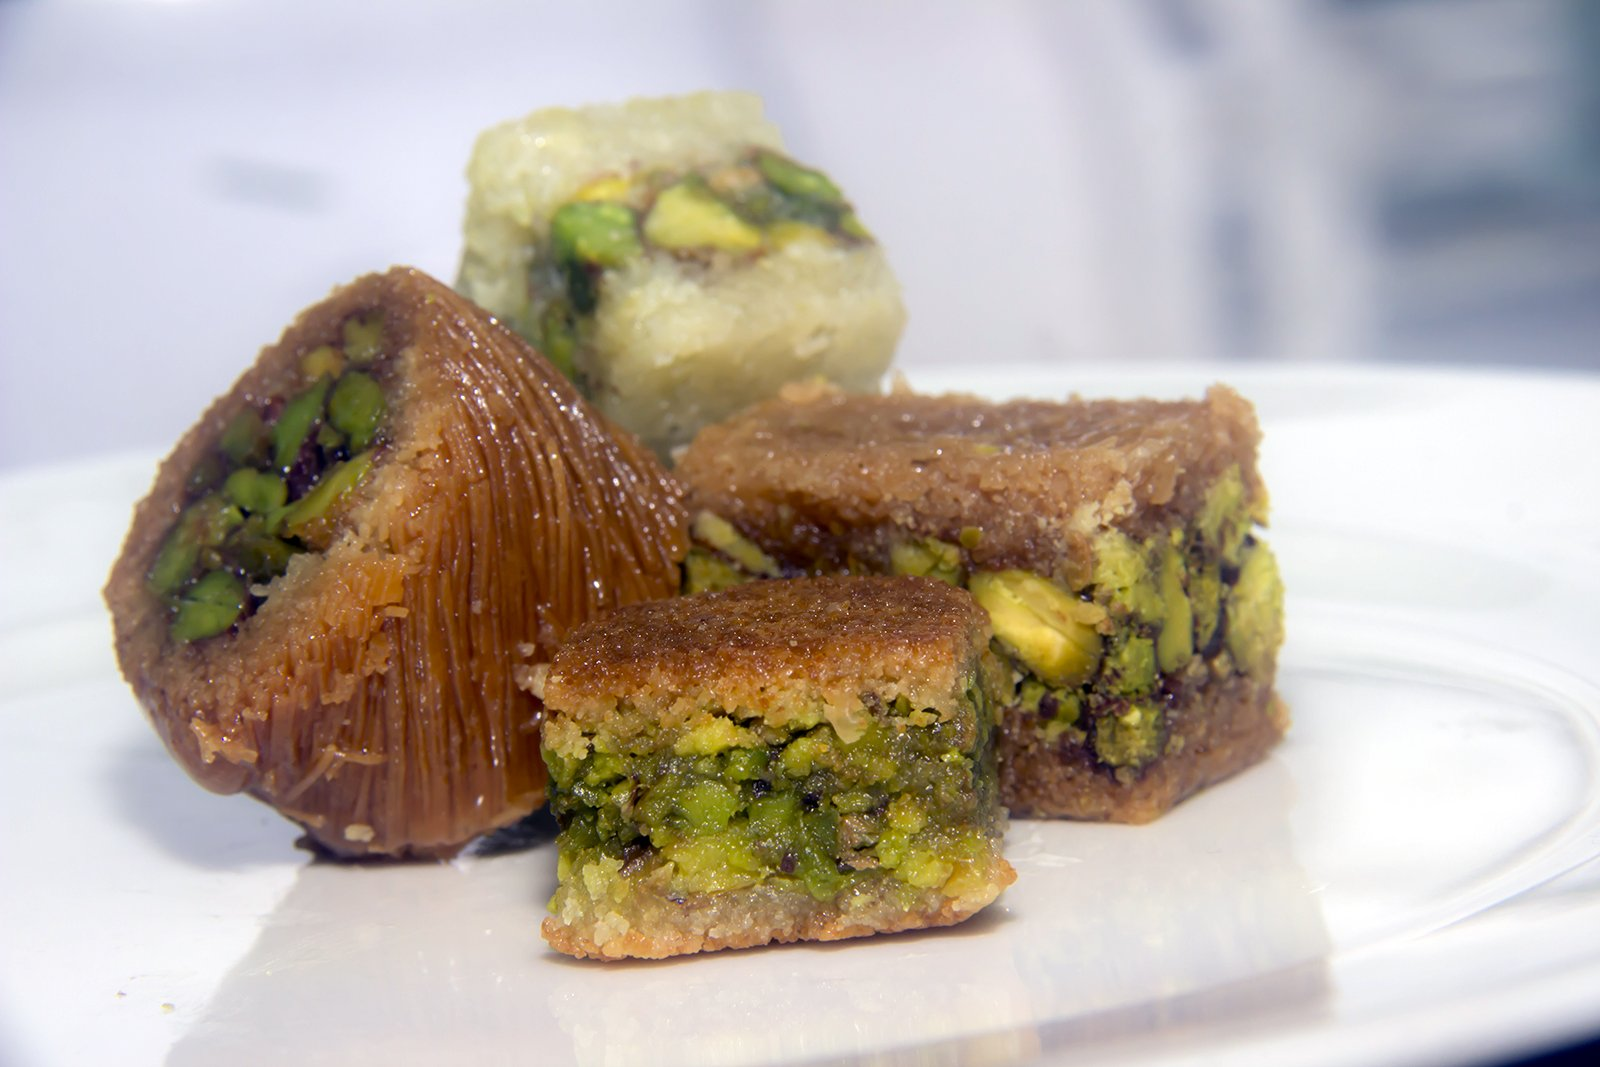 Assorted Baklava Sweets w/Pistachio (20 Oz) : 23-25 Pcs small cut - Imported Fresh from Lebanon - THE ORIGINAL Recipe From Middle East - Assorted Baklava Pastry Pistachios (20 Oz) by Hallab 1881 (Image #3)